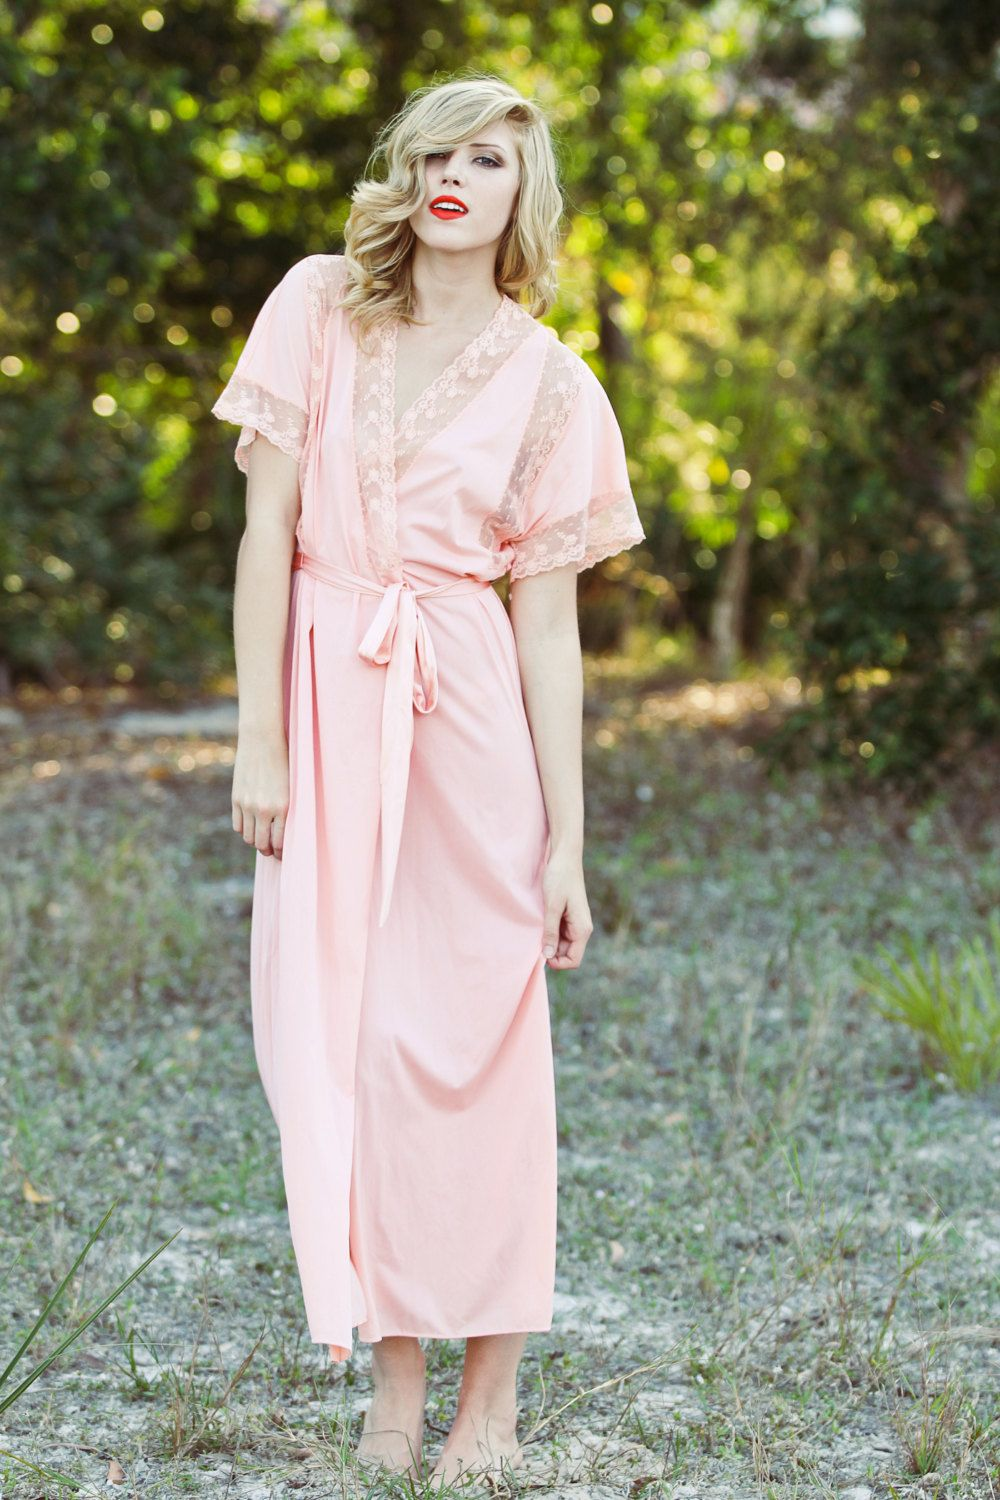 Lace Detail on Short Sleeve Long Robe